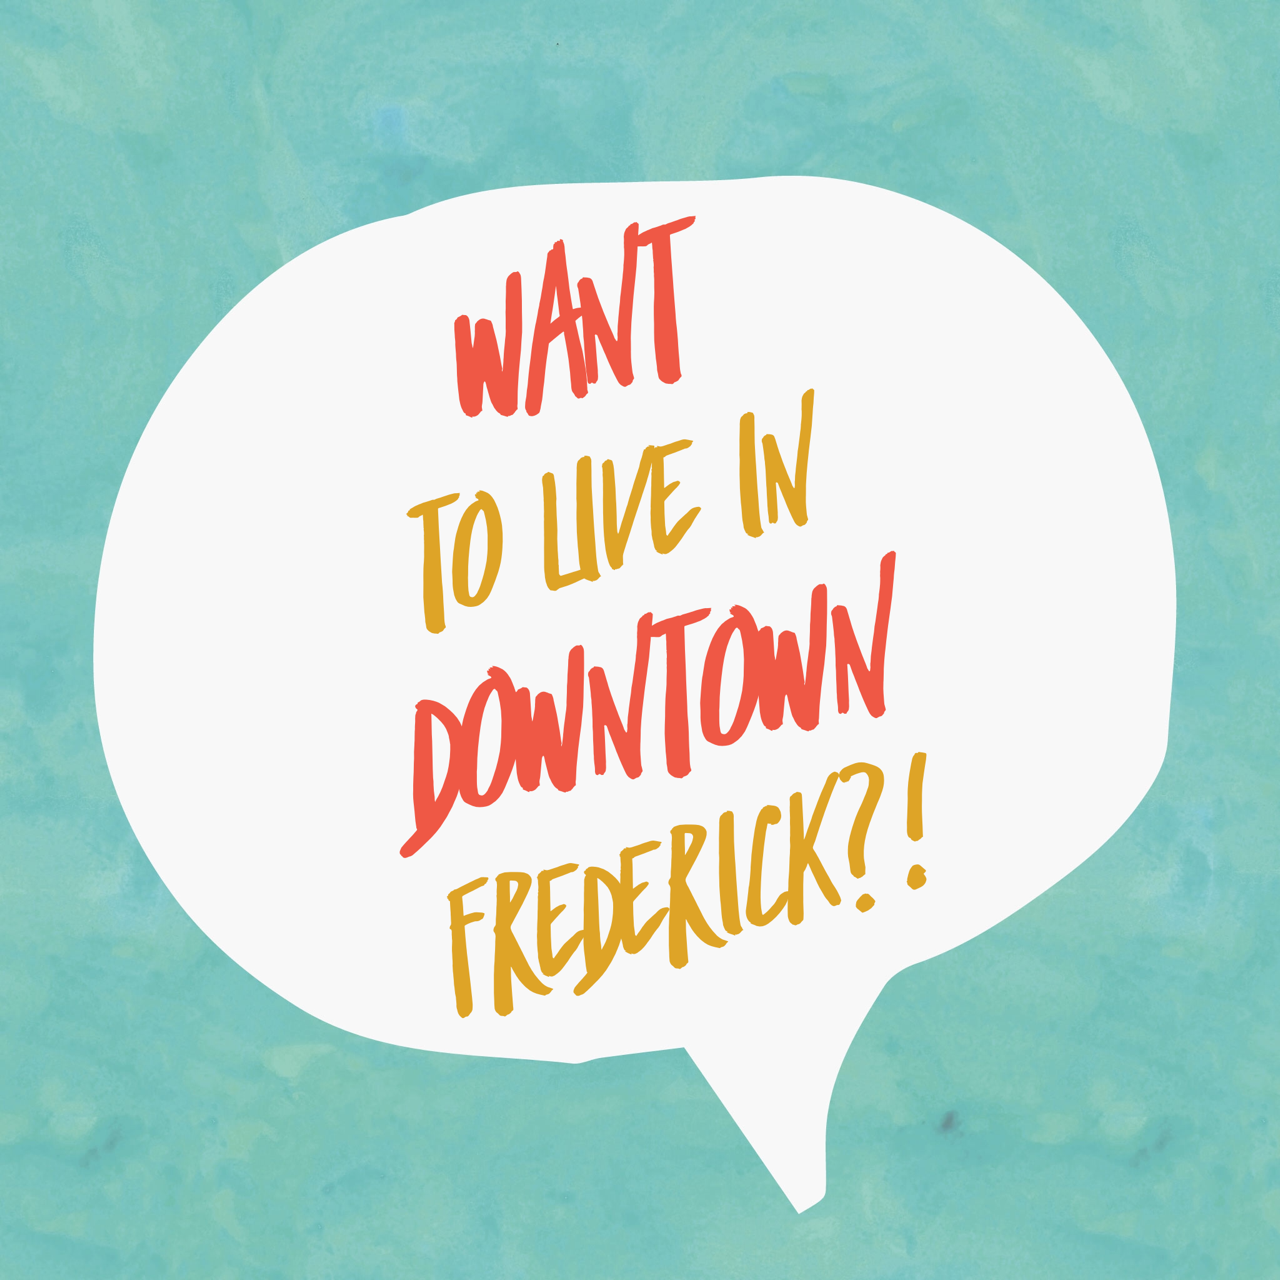 Want to live in downtown Frederick?